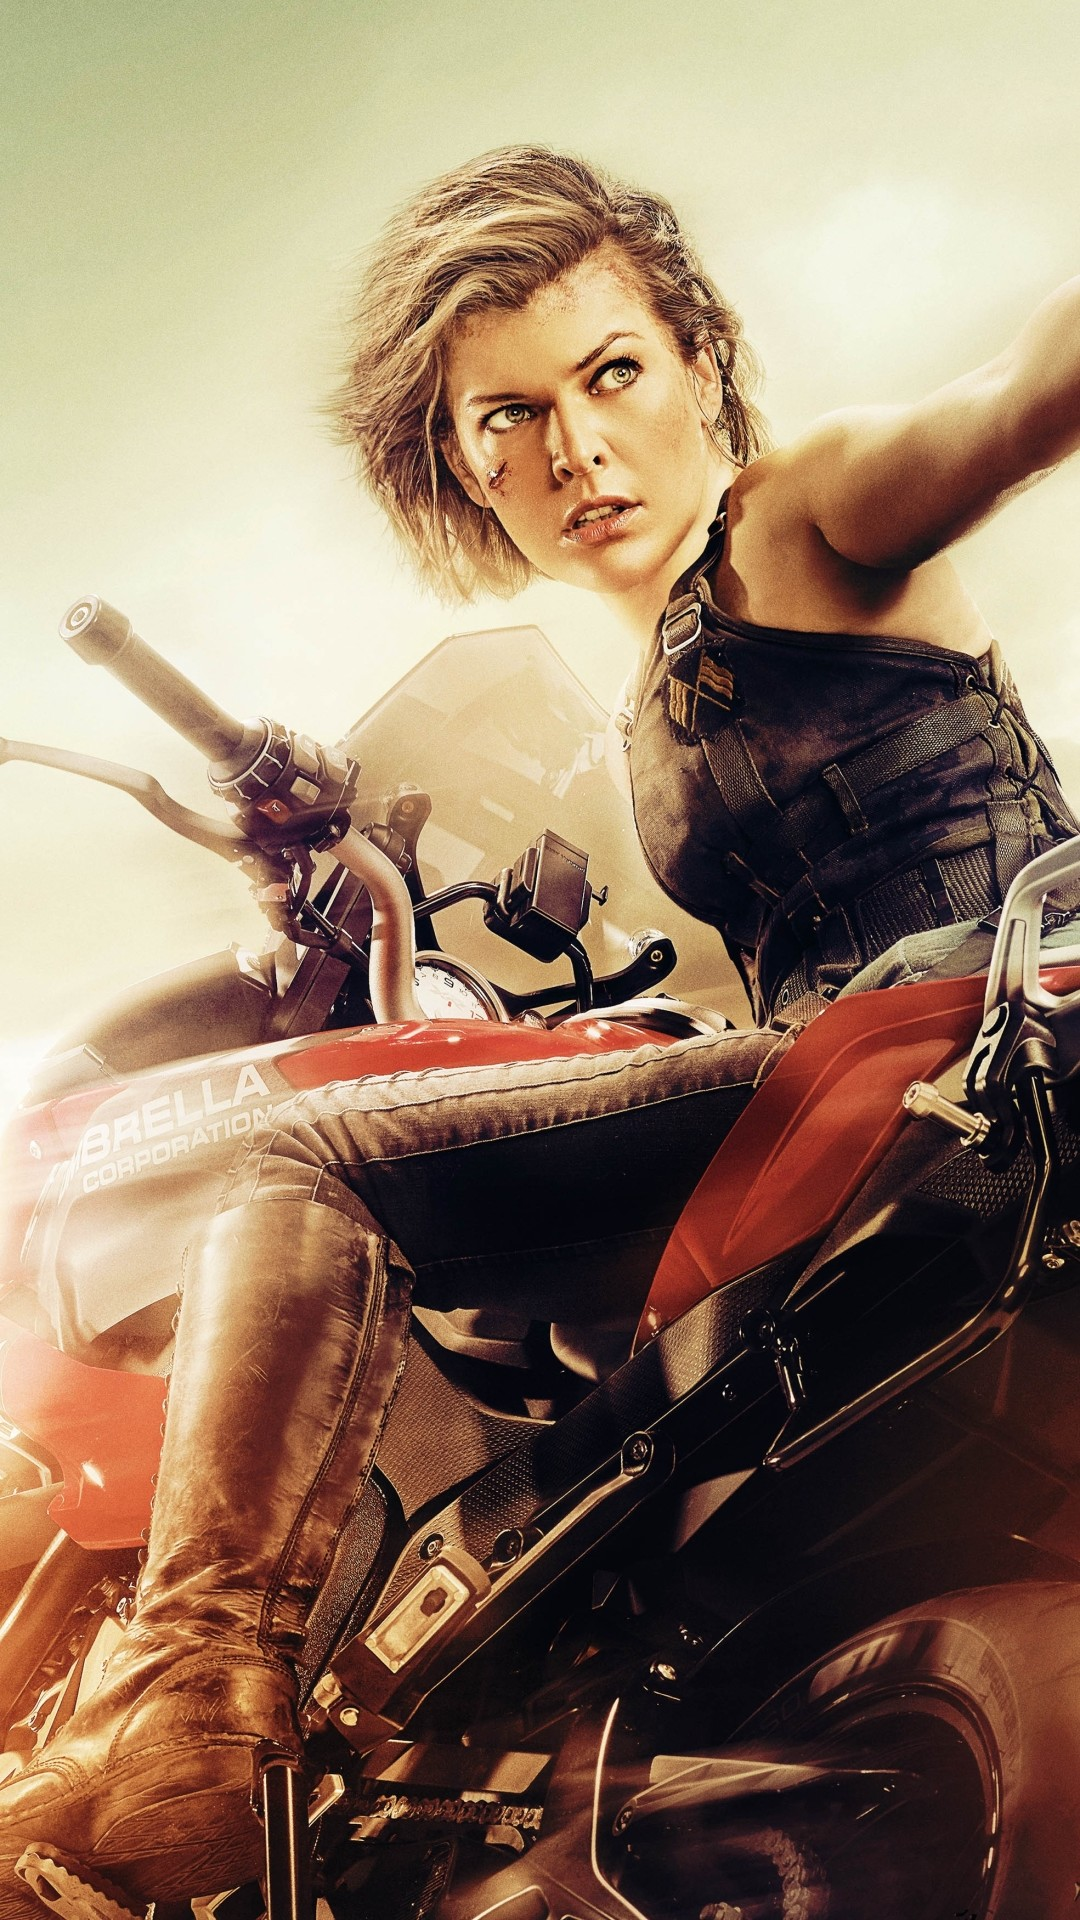 Resident evil the final chapter wallpapers 74 pictures - Milla jovovich 4k wallpaper ...